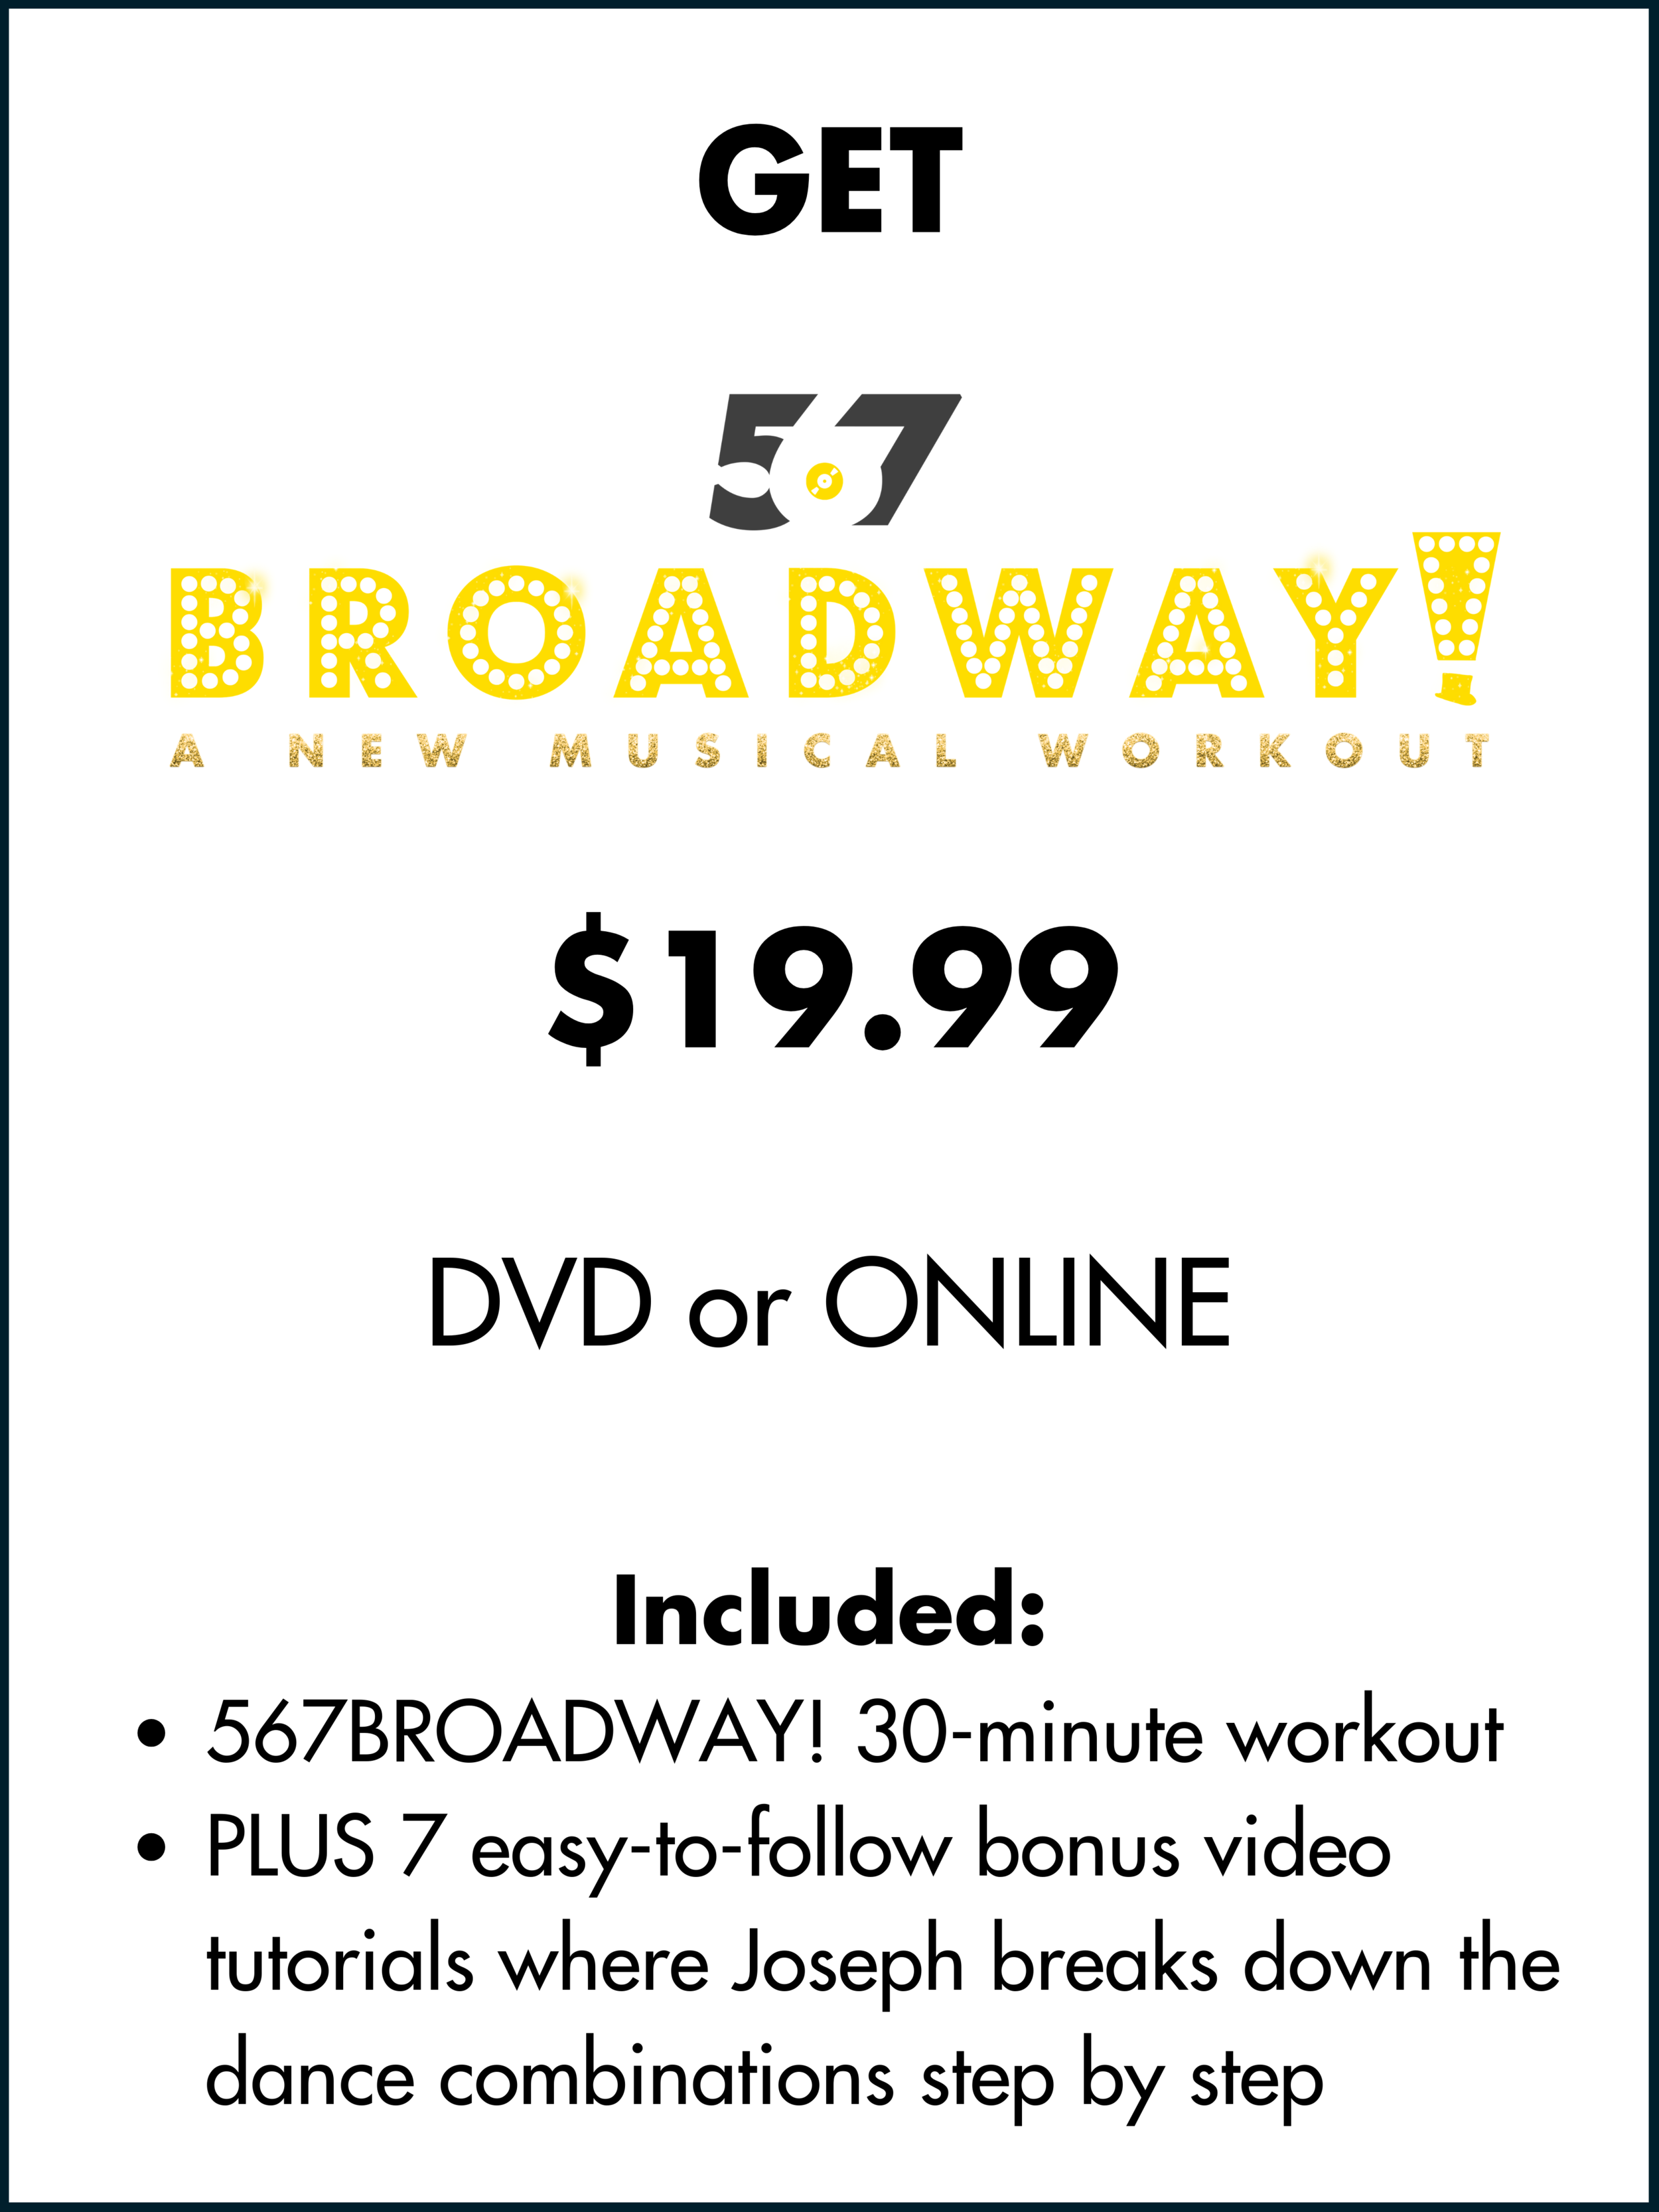 GET 567BROADWAY! $19.99 ONE TIME FEE You Get_ 567BROADWAY! 30-minute workout PLUS 7 easy-to-follow bonus video tutorials where Joseph breaks down the dance combinations step by step (4).png